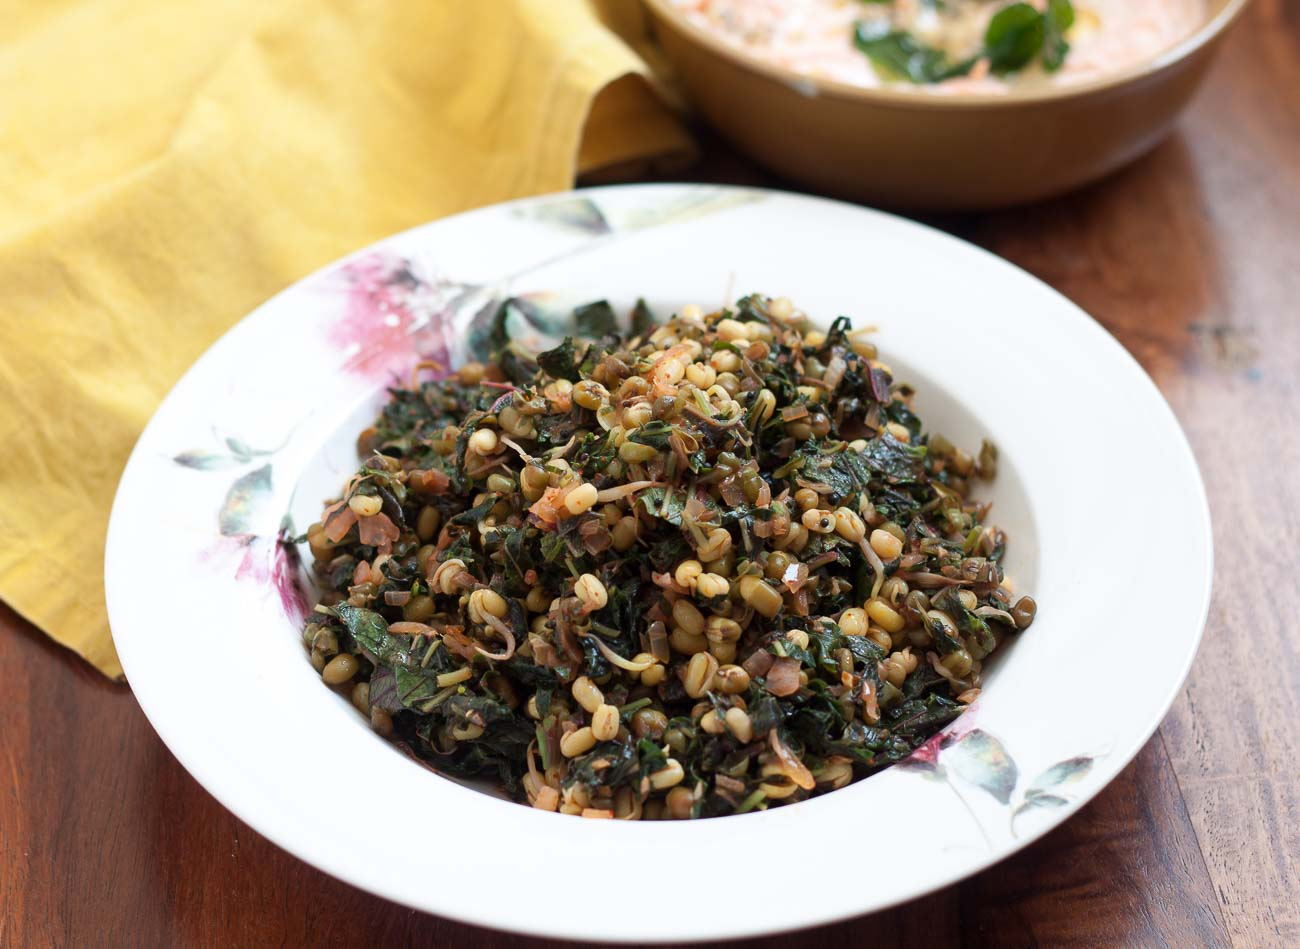 Lal Mathachi Bhaji Recipe - Amaranth Leaves Moong Sprouts Sabzi